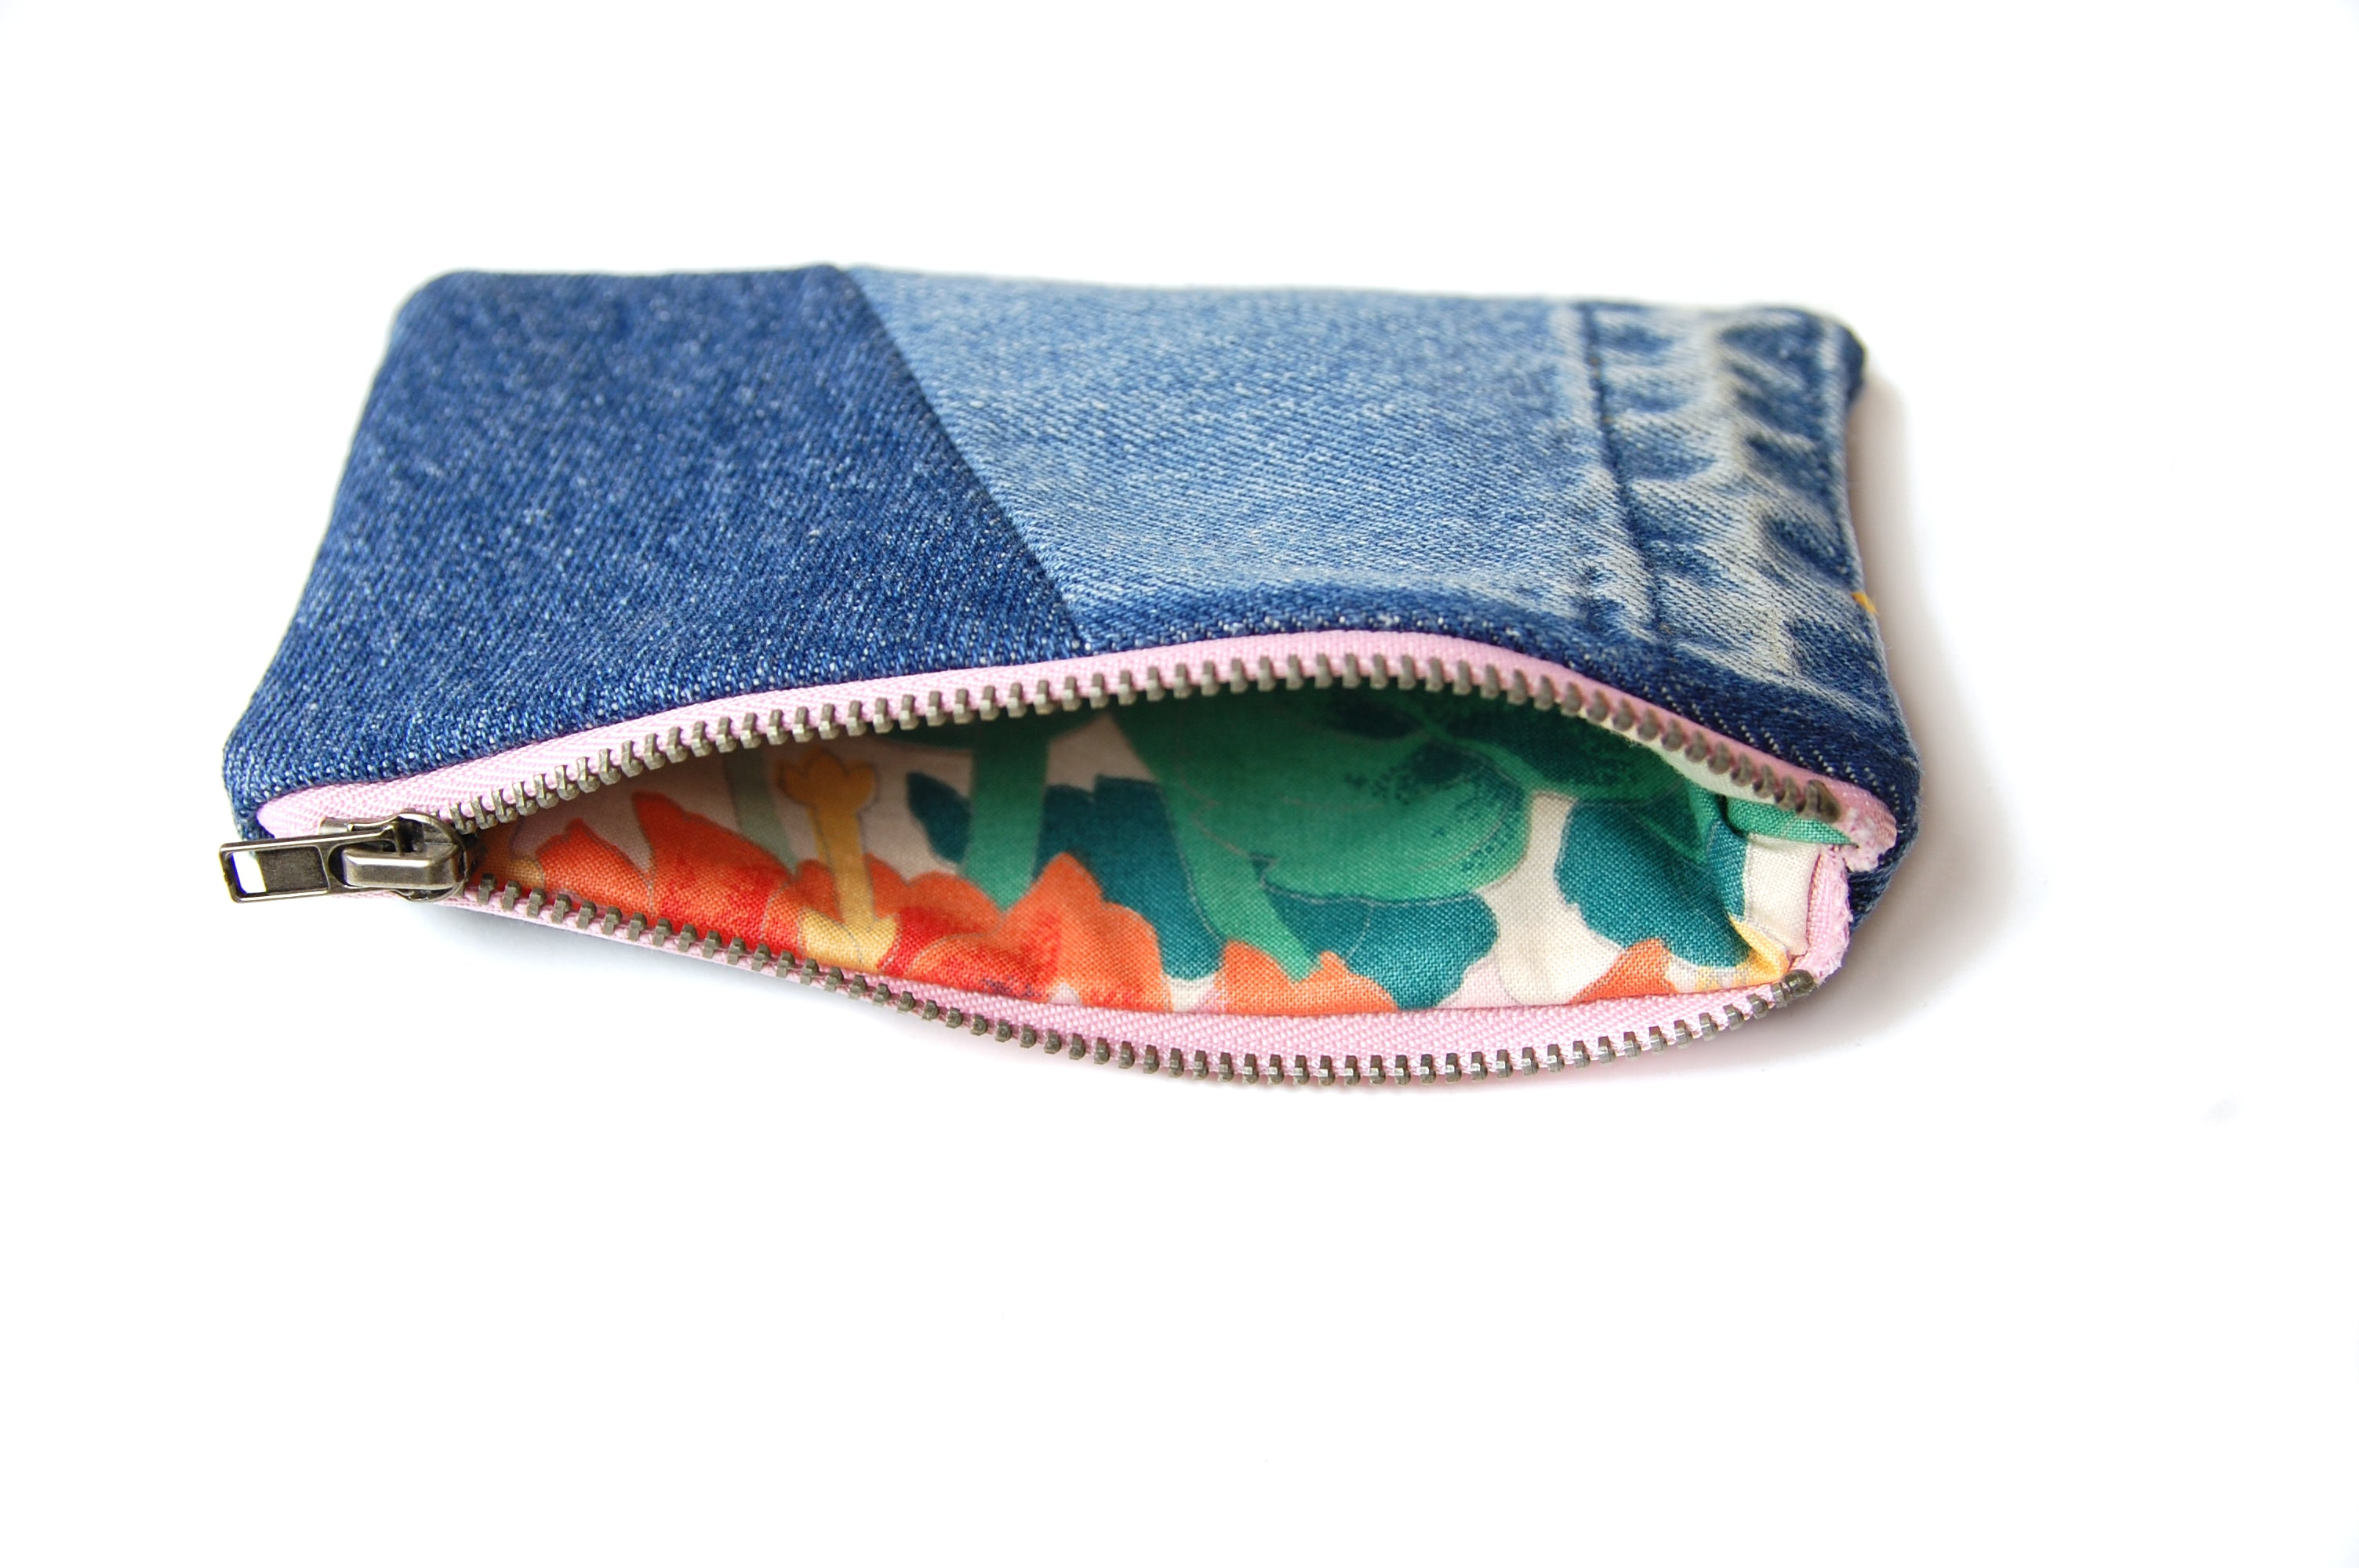 Denim Pouch (5) - Late to the Party